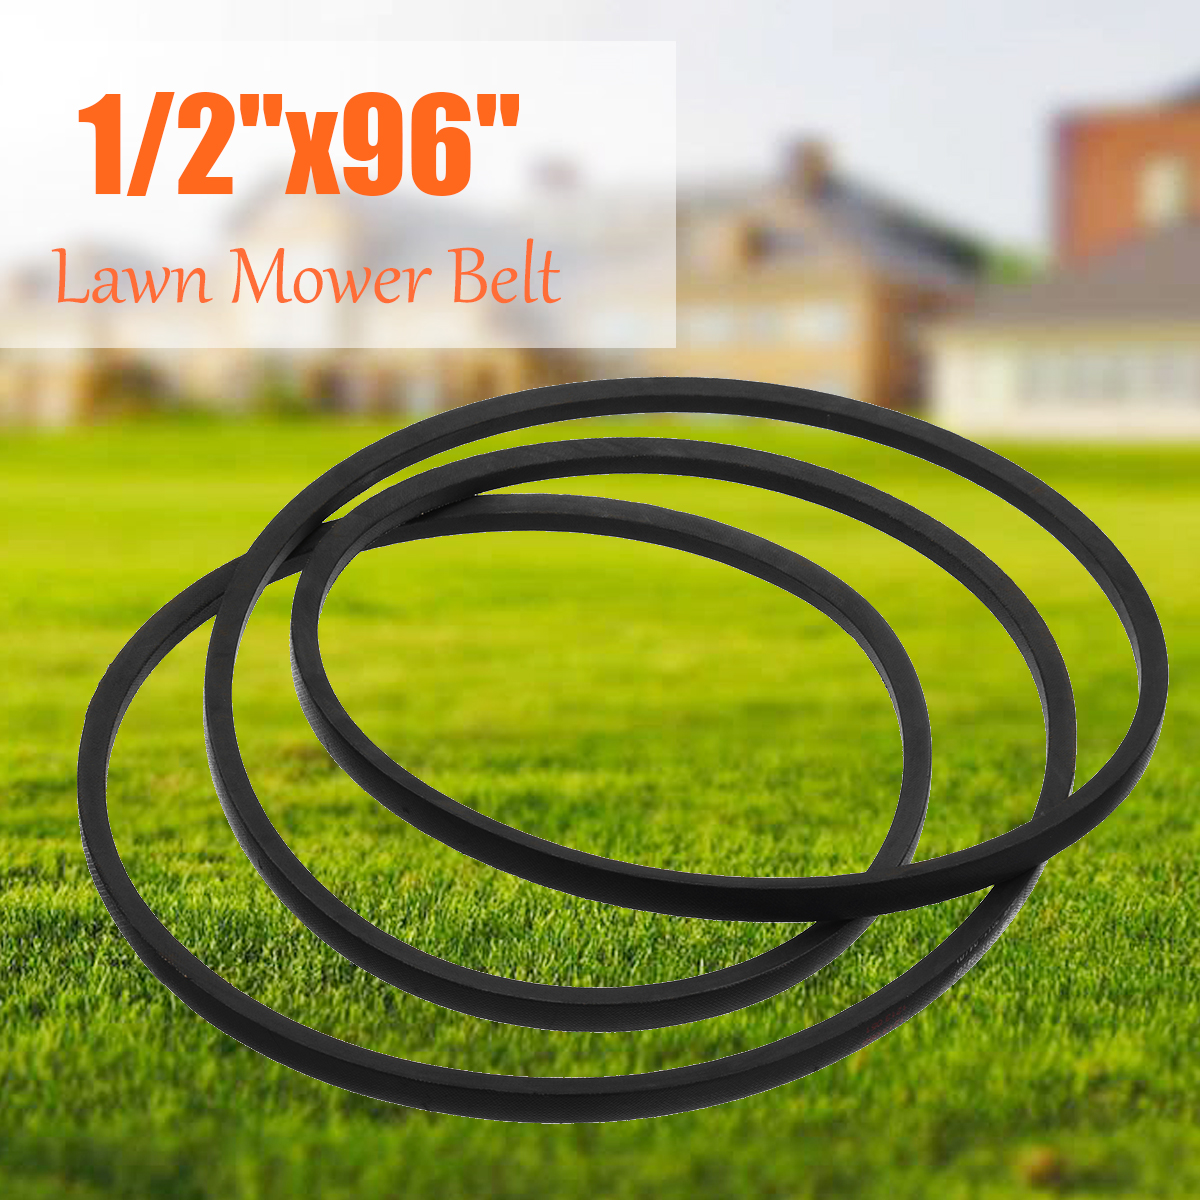 for yard machine lawn mower belts tractor drive v belt for lawn mover parts 13mm 1 2 x 96 k type vee rubber belt for industry [ 1200 x 1200 Pixel ]